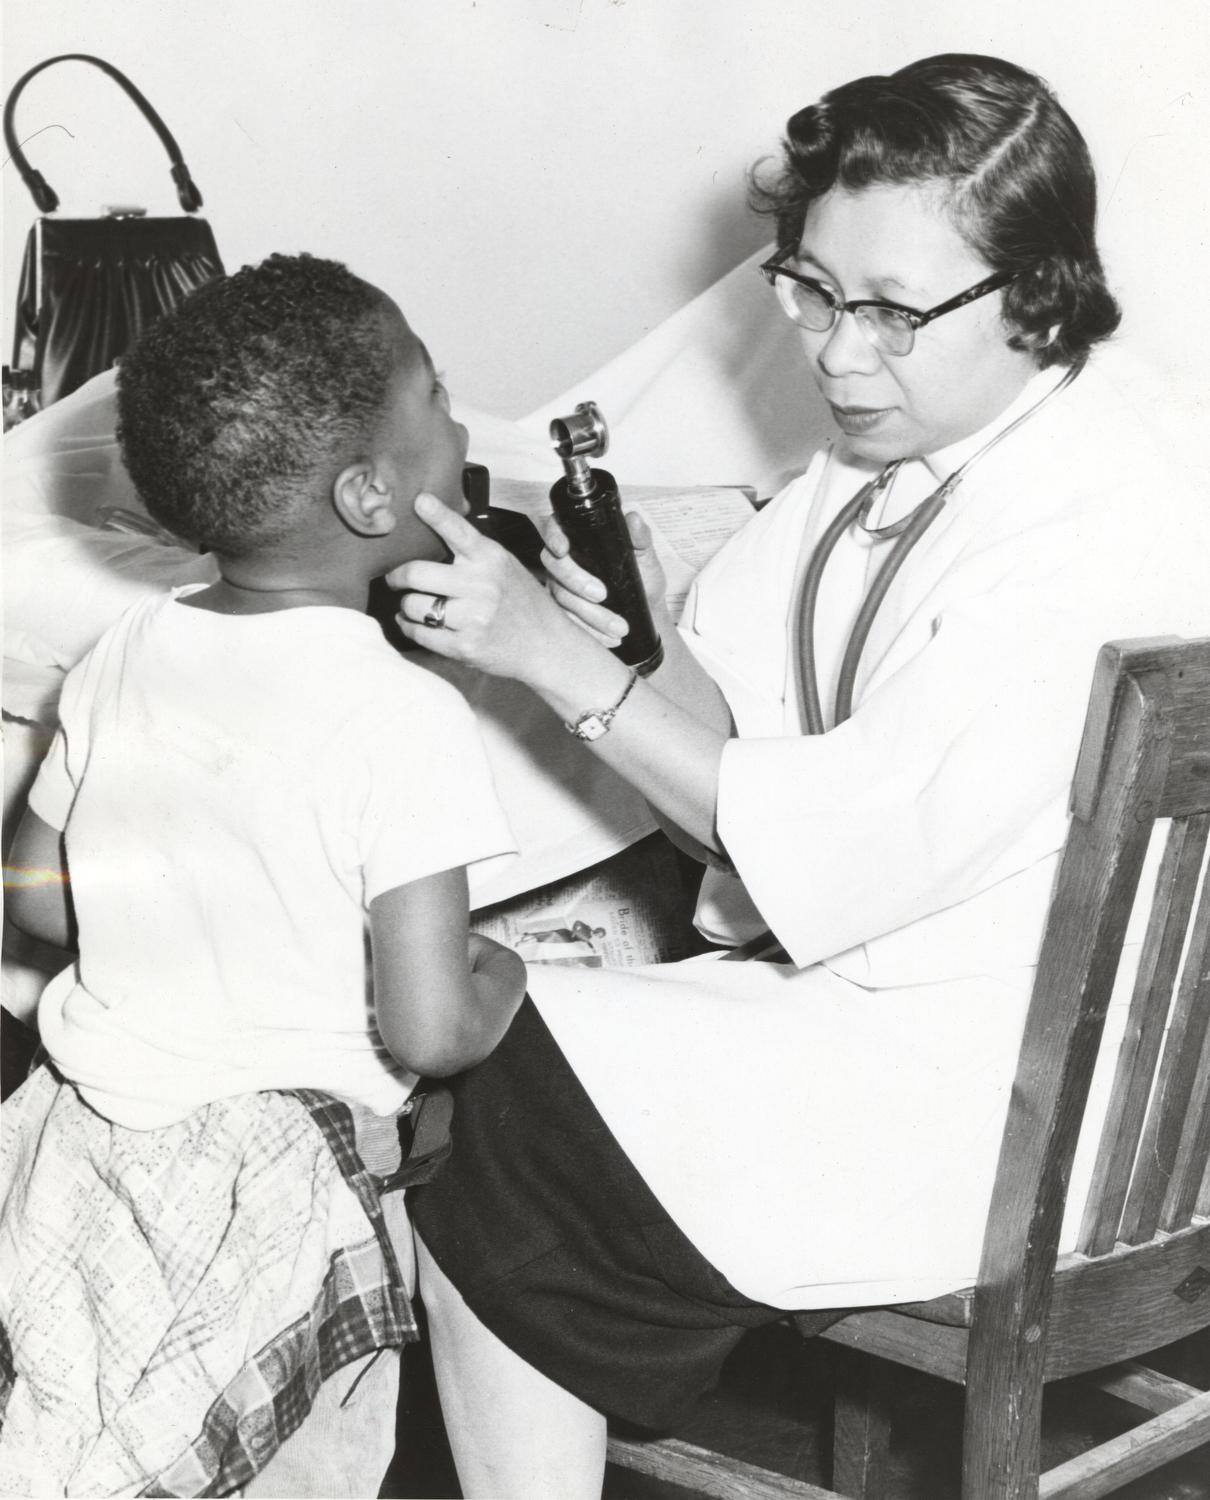 Doctor looking into the mouth of a young African American boy